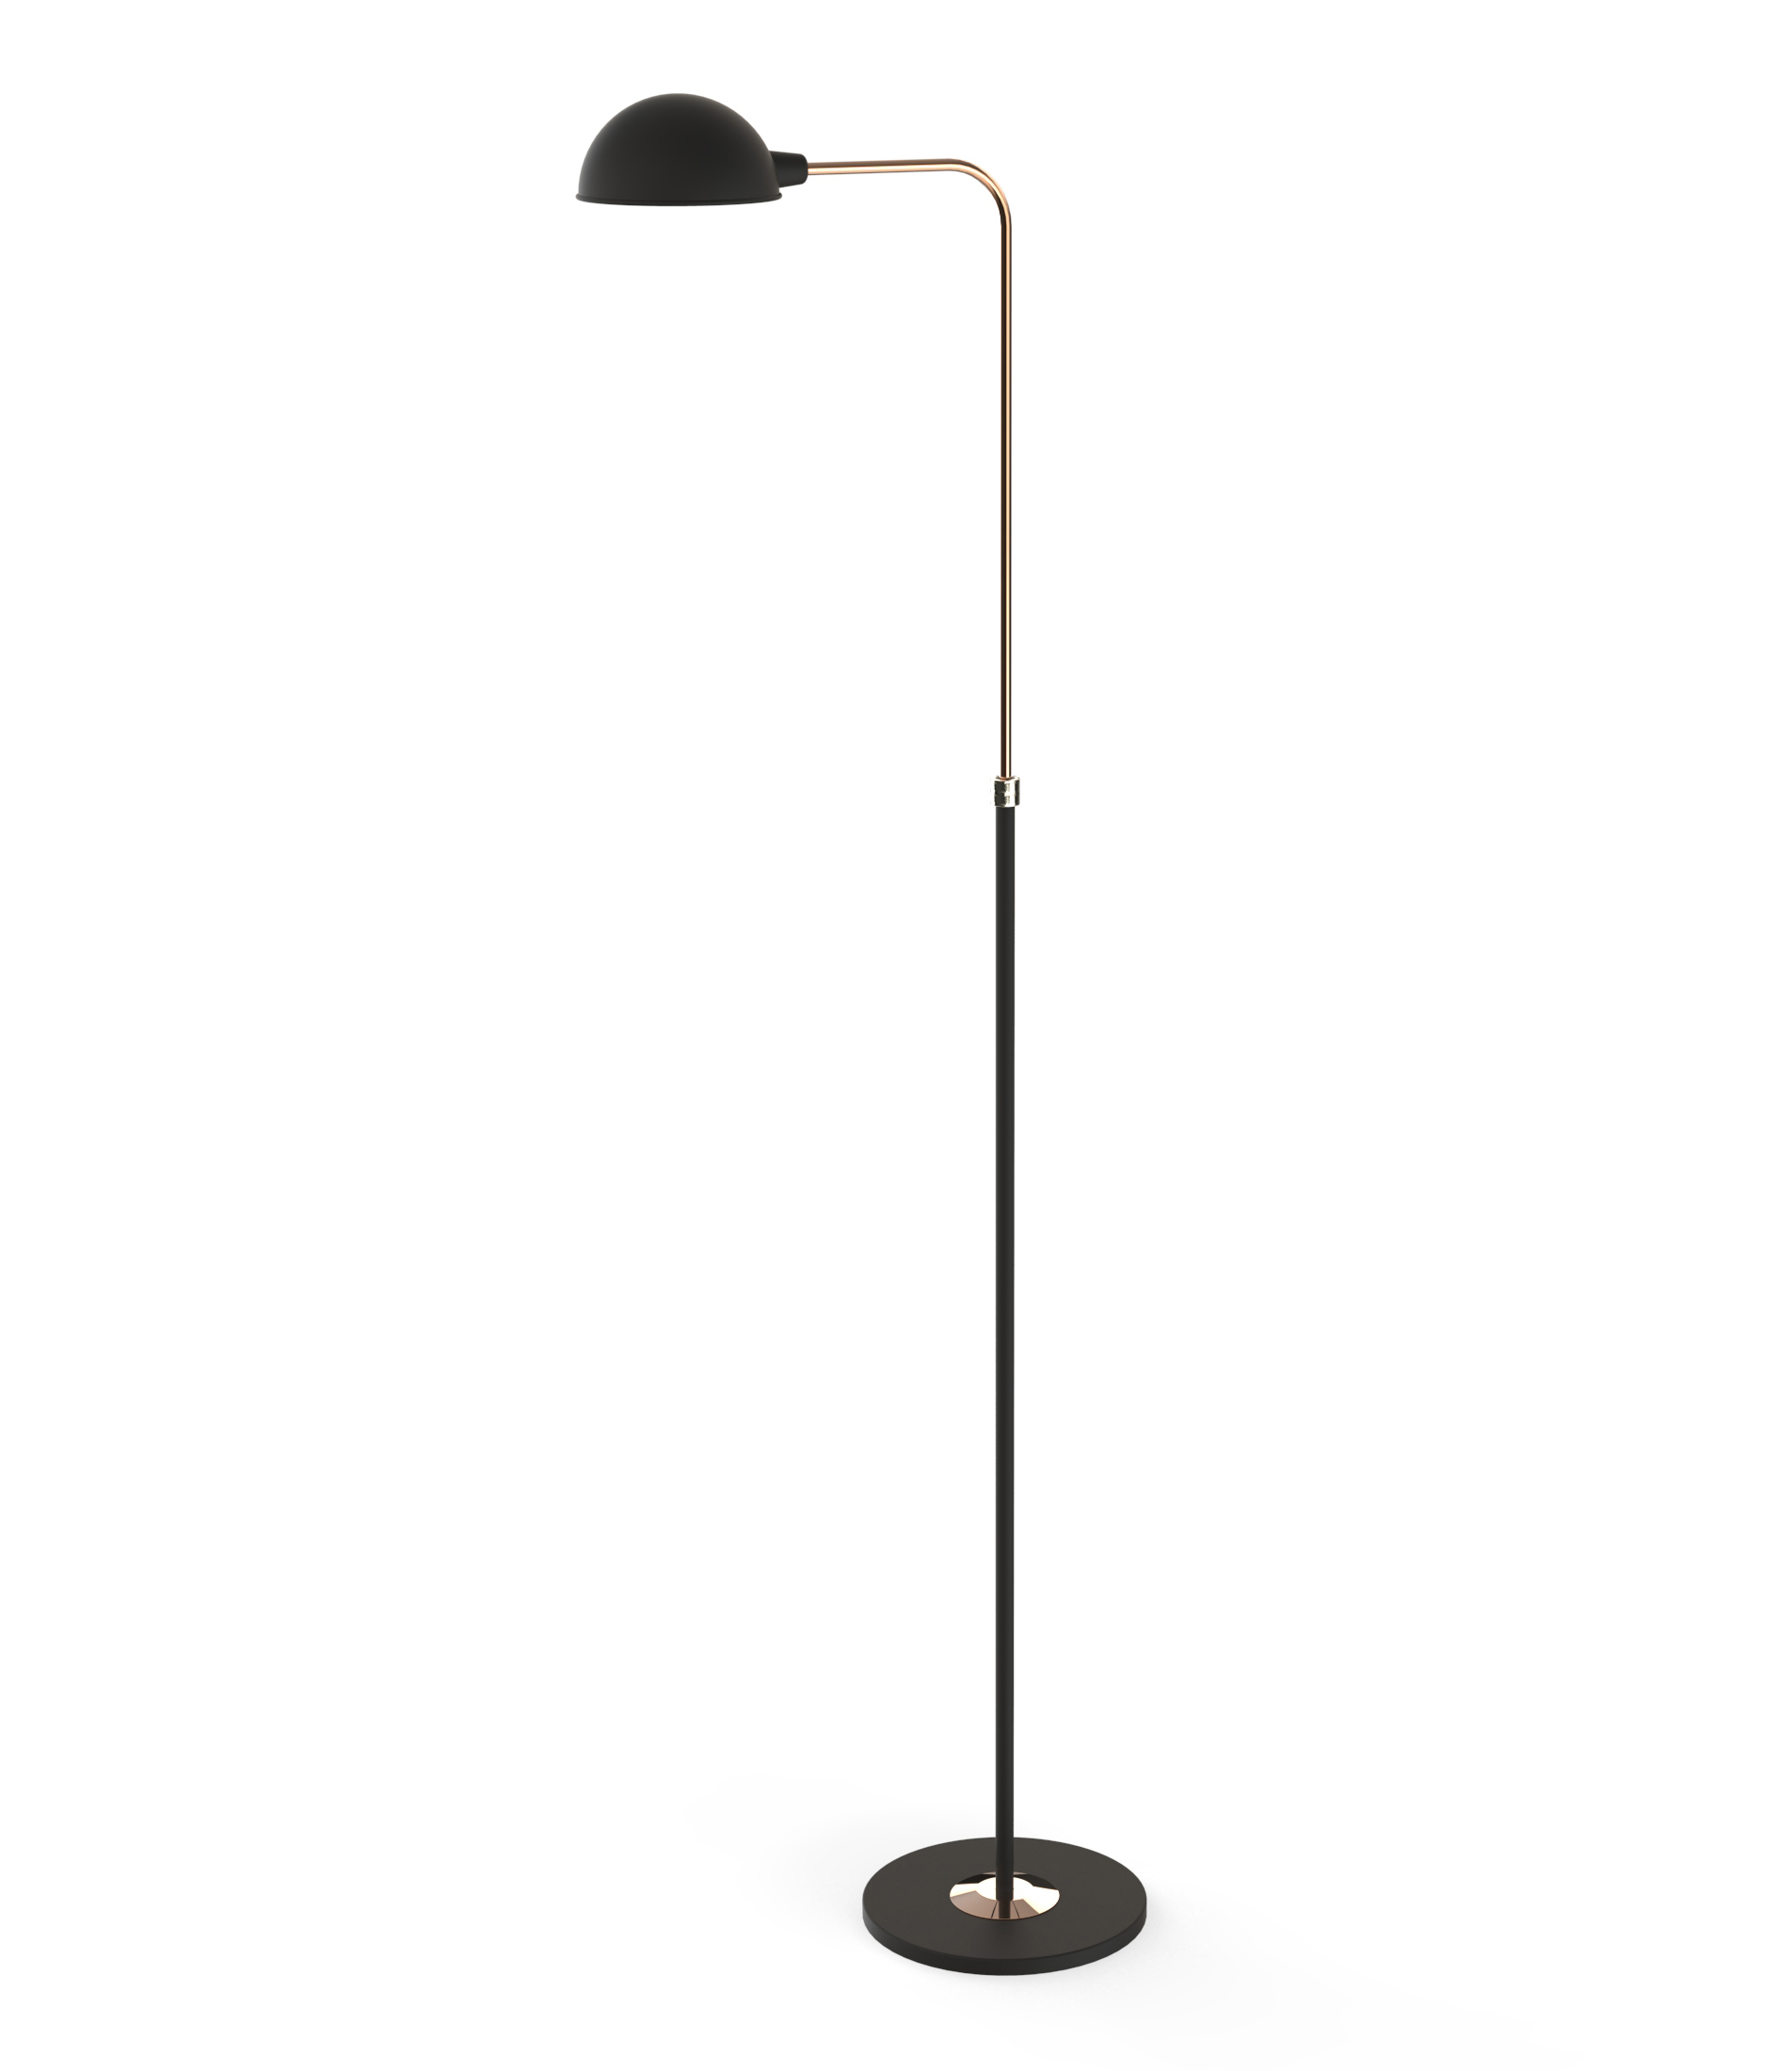 Home design ideas mid century floor lamps that you 39 ll love - Contemporary floor lamps for your modern style at house ...